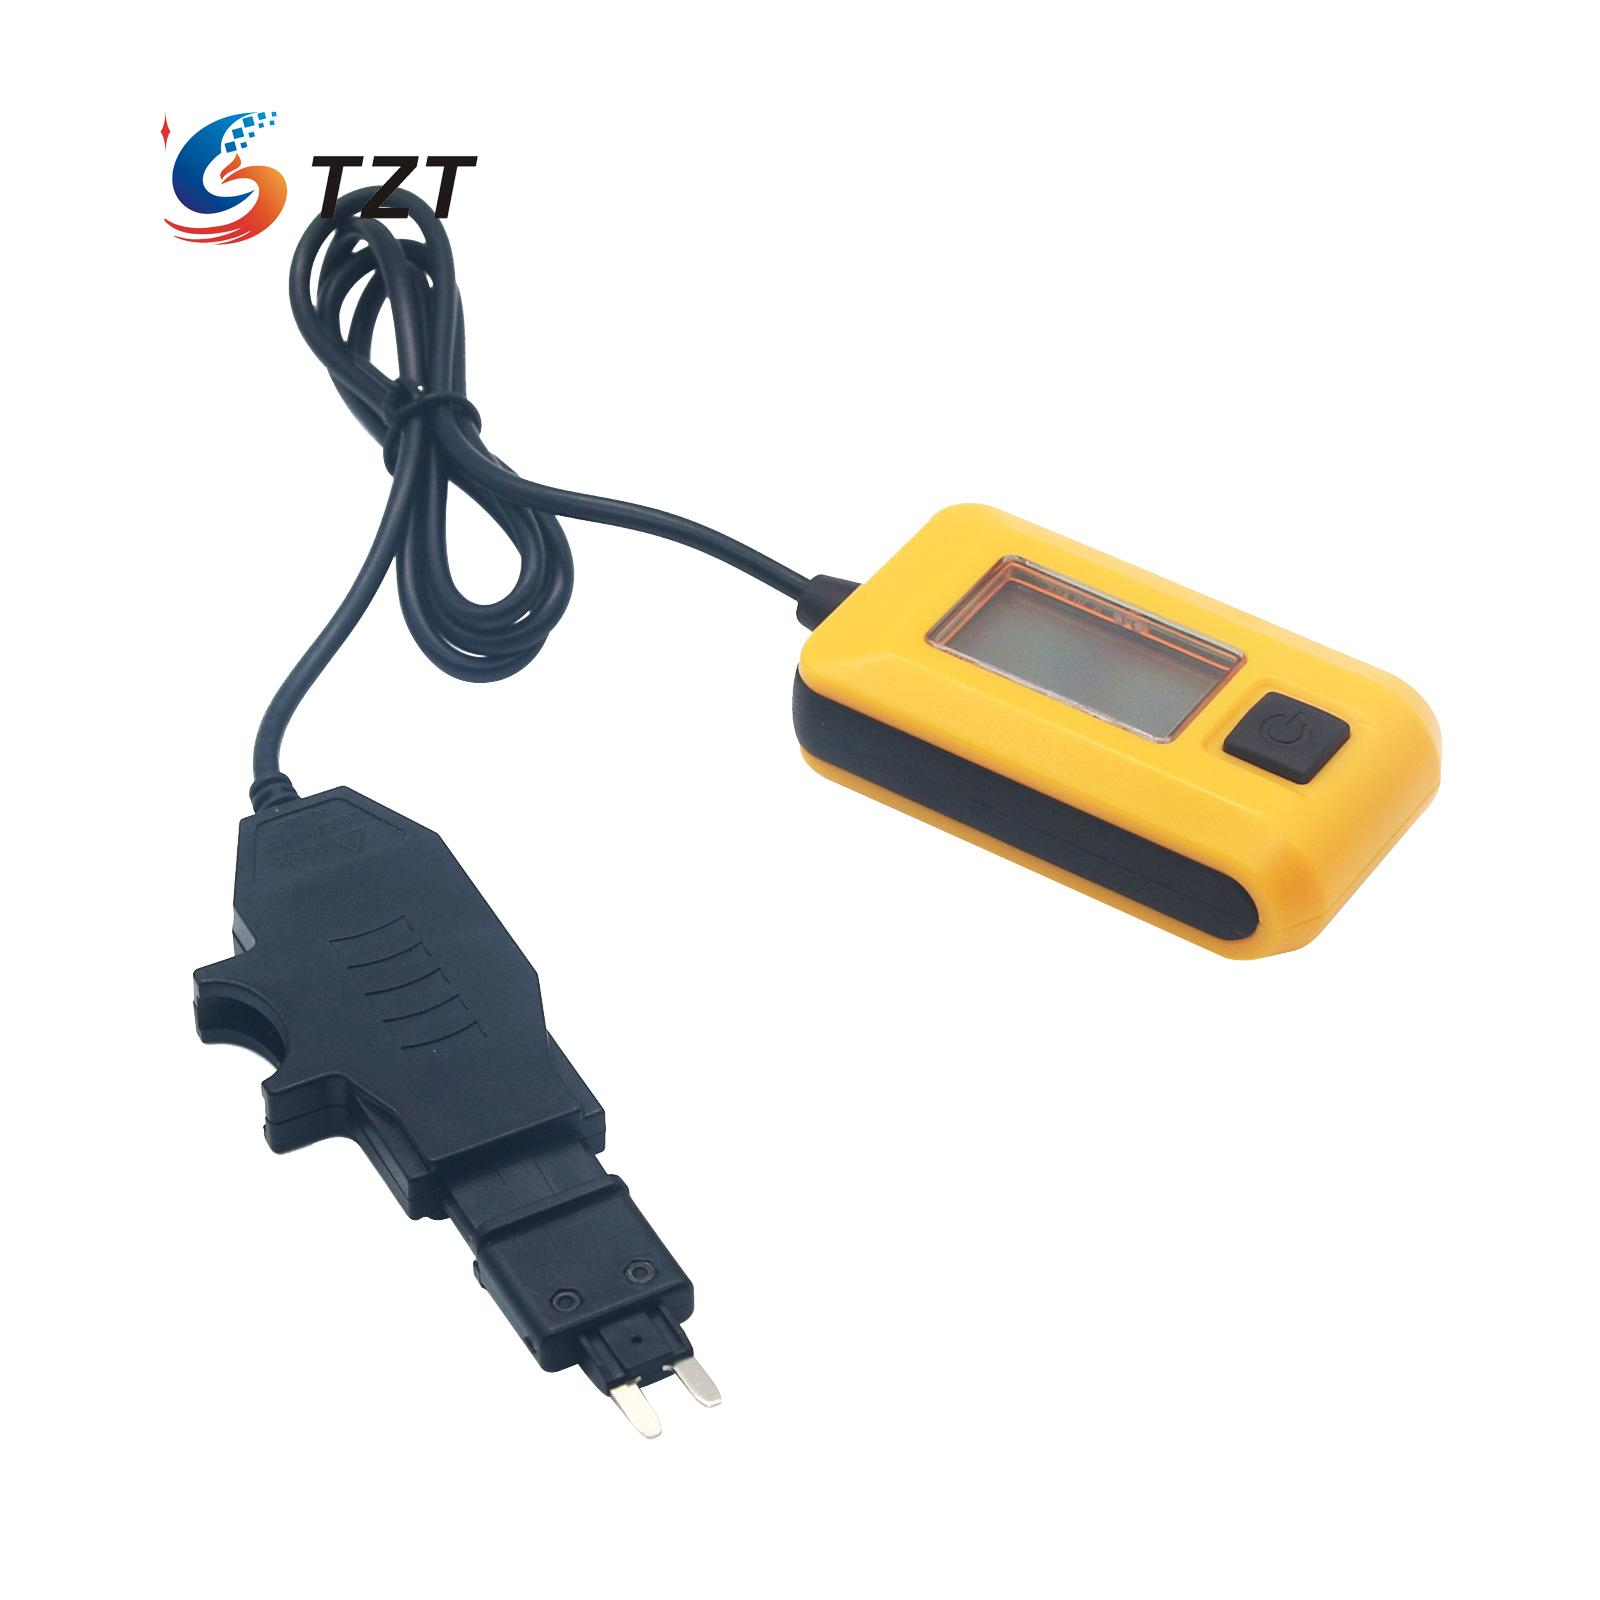 ae150 car electrical current tester by fuse galvanometer diagnostic tool 12v 23a [ 1600 x 1600 Pixel ]